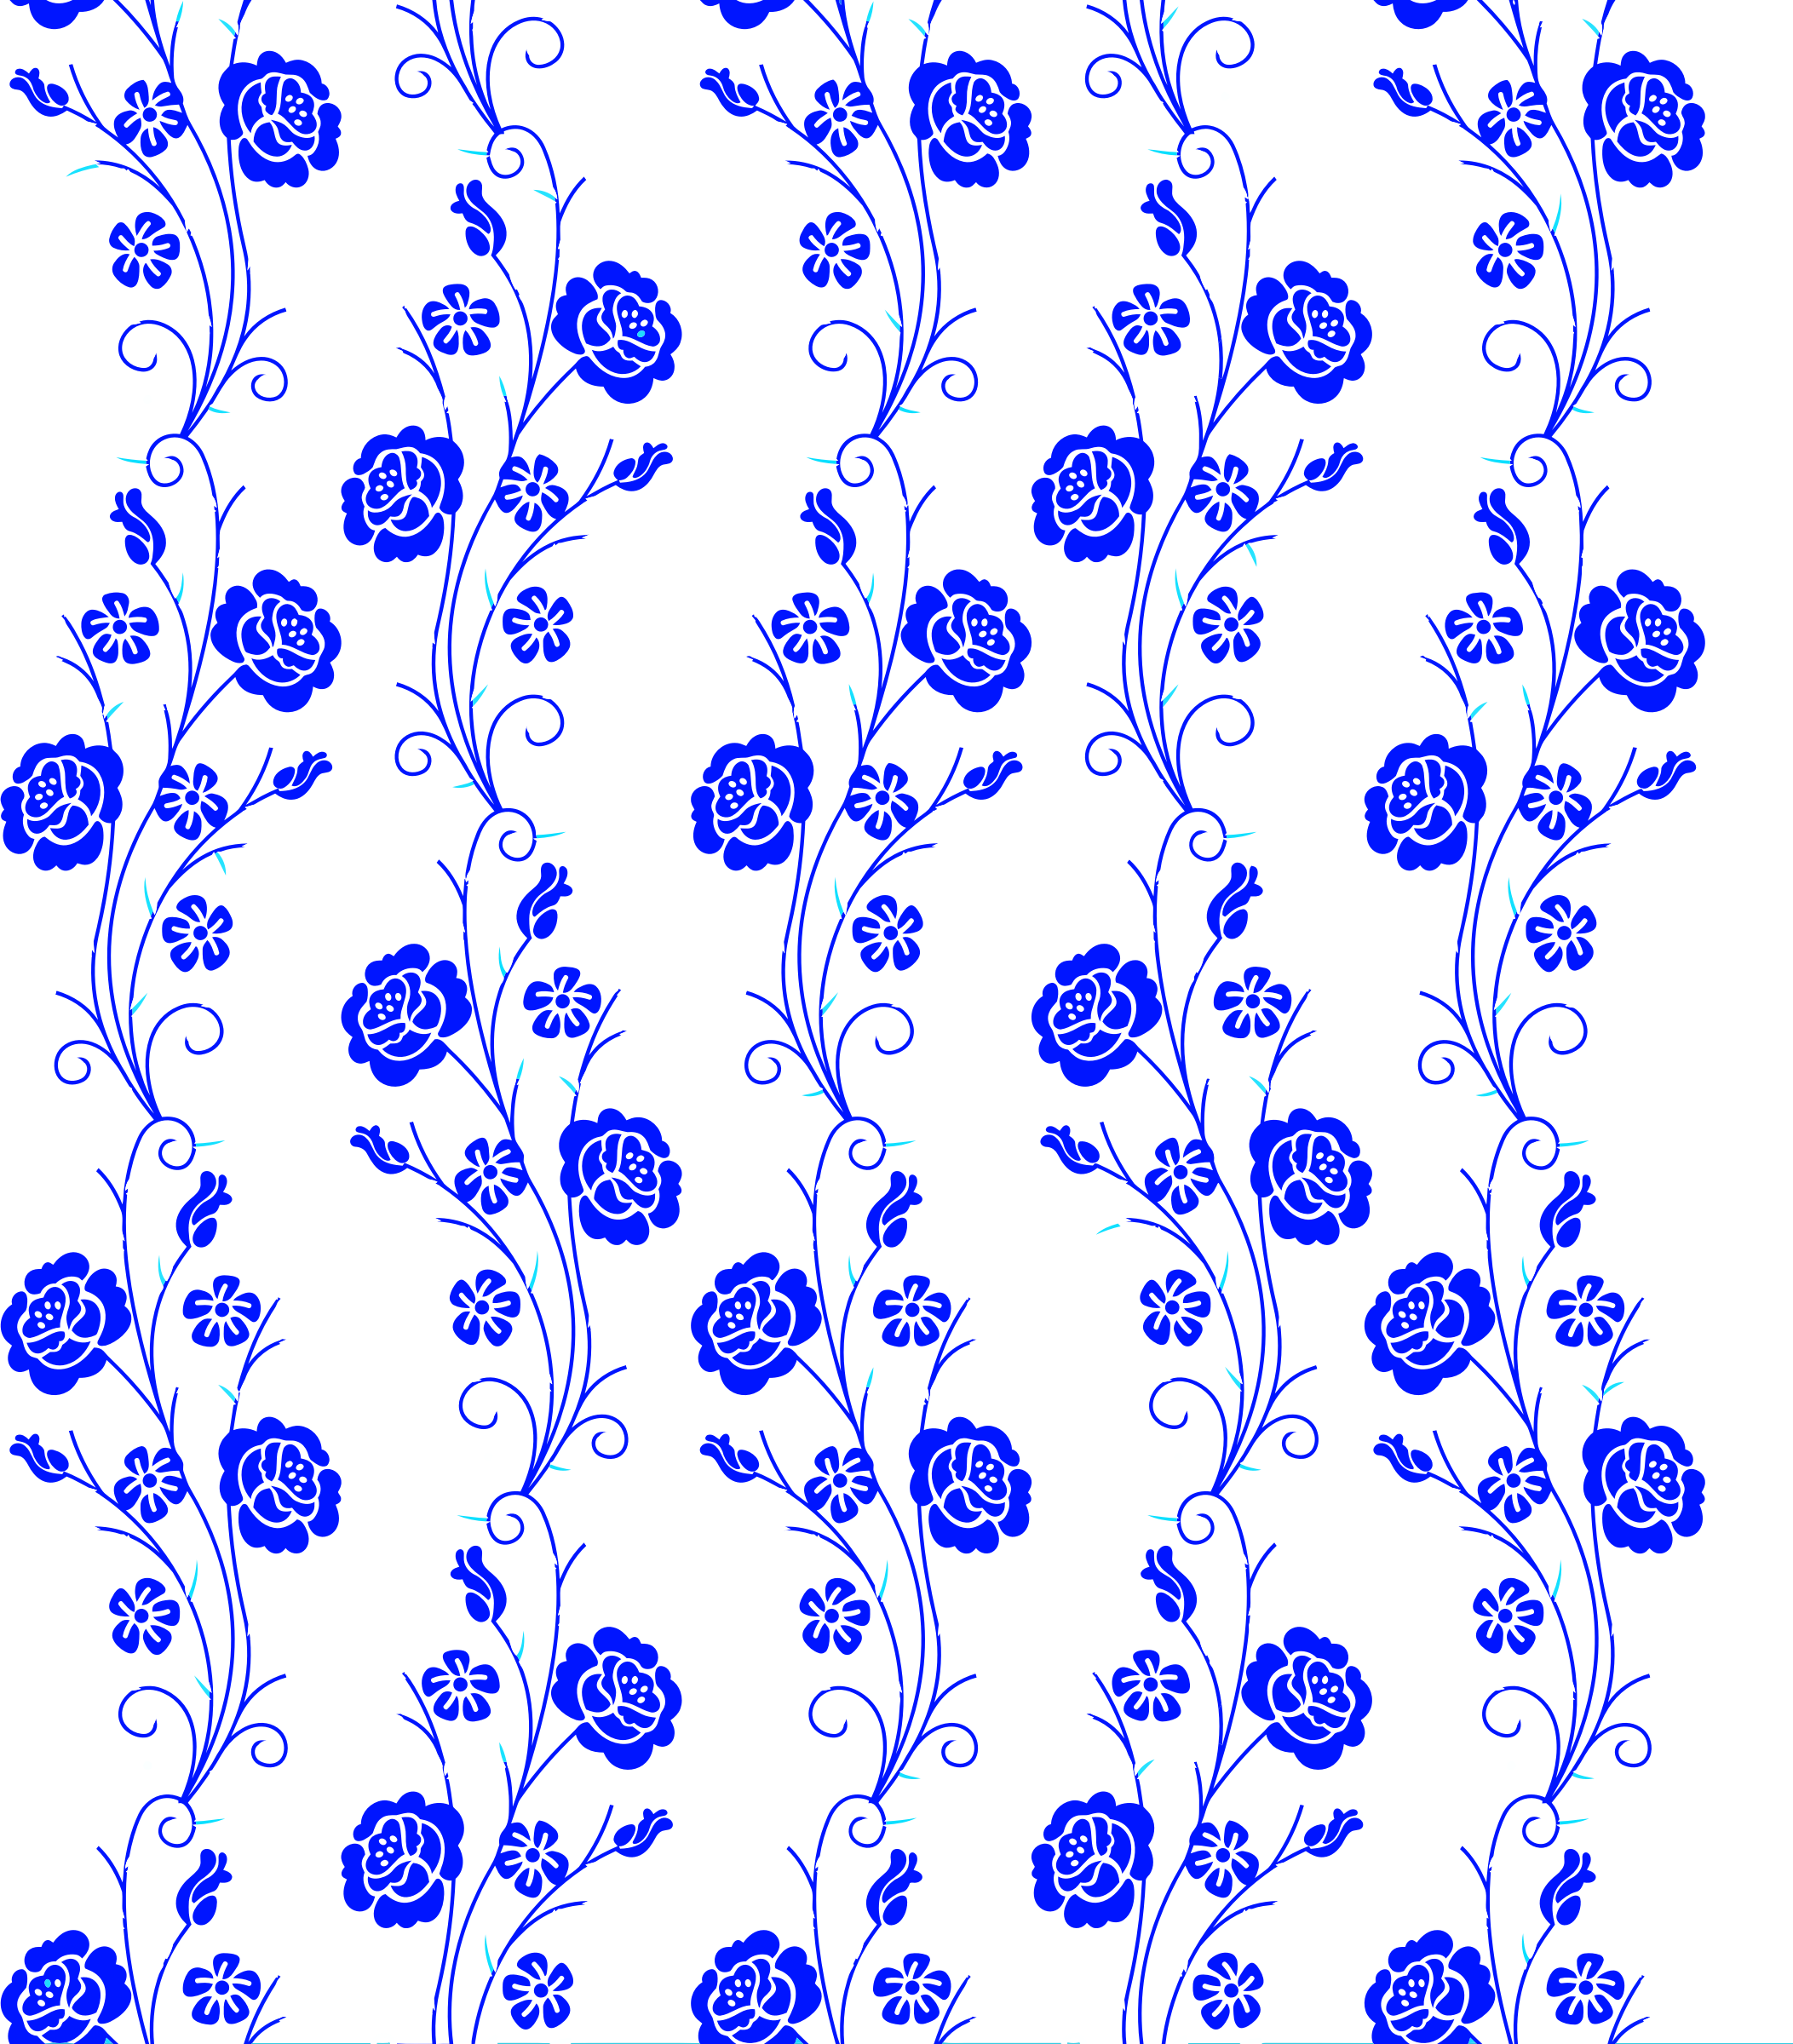 Vertical vector background. Floral pattern without icons